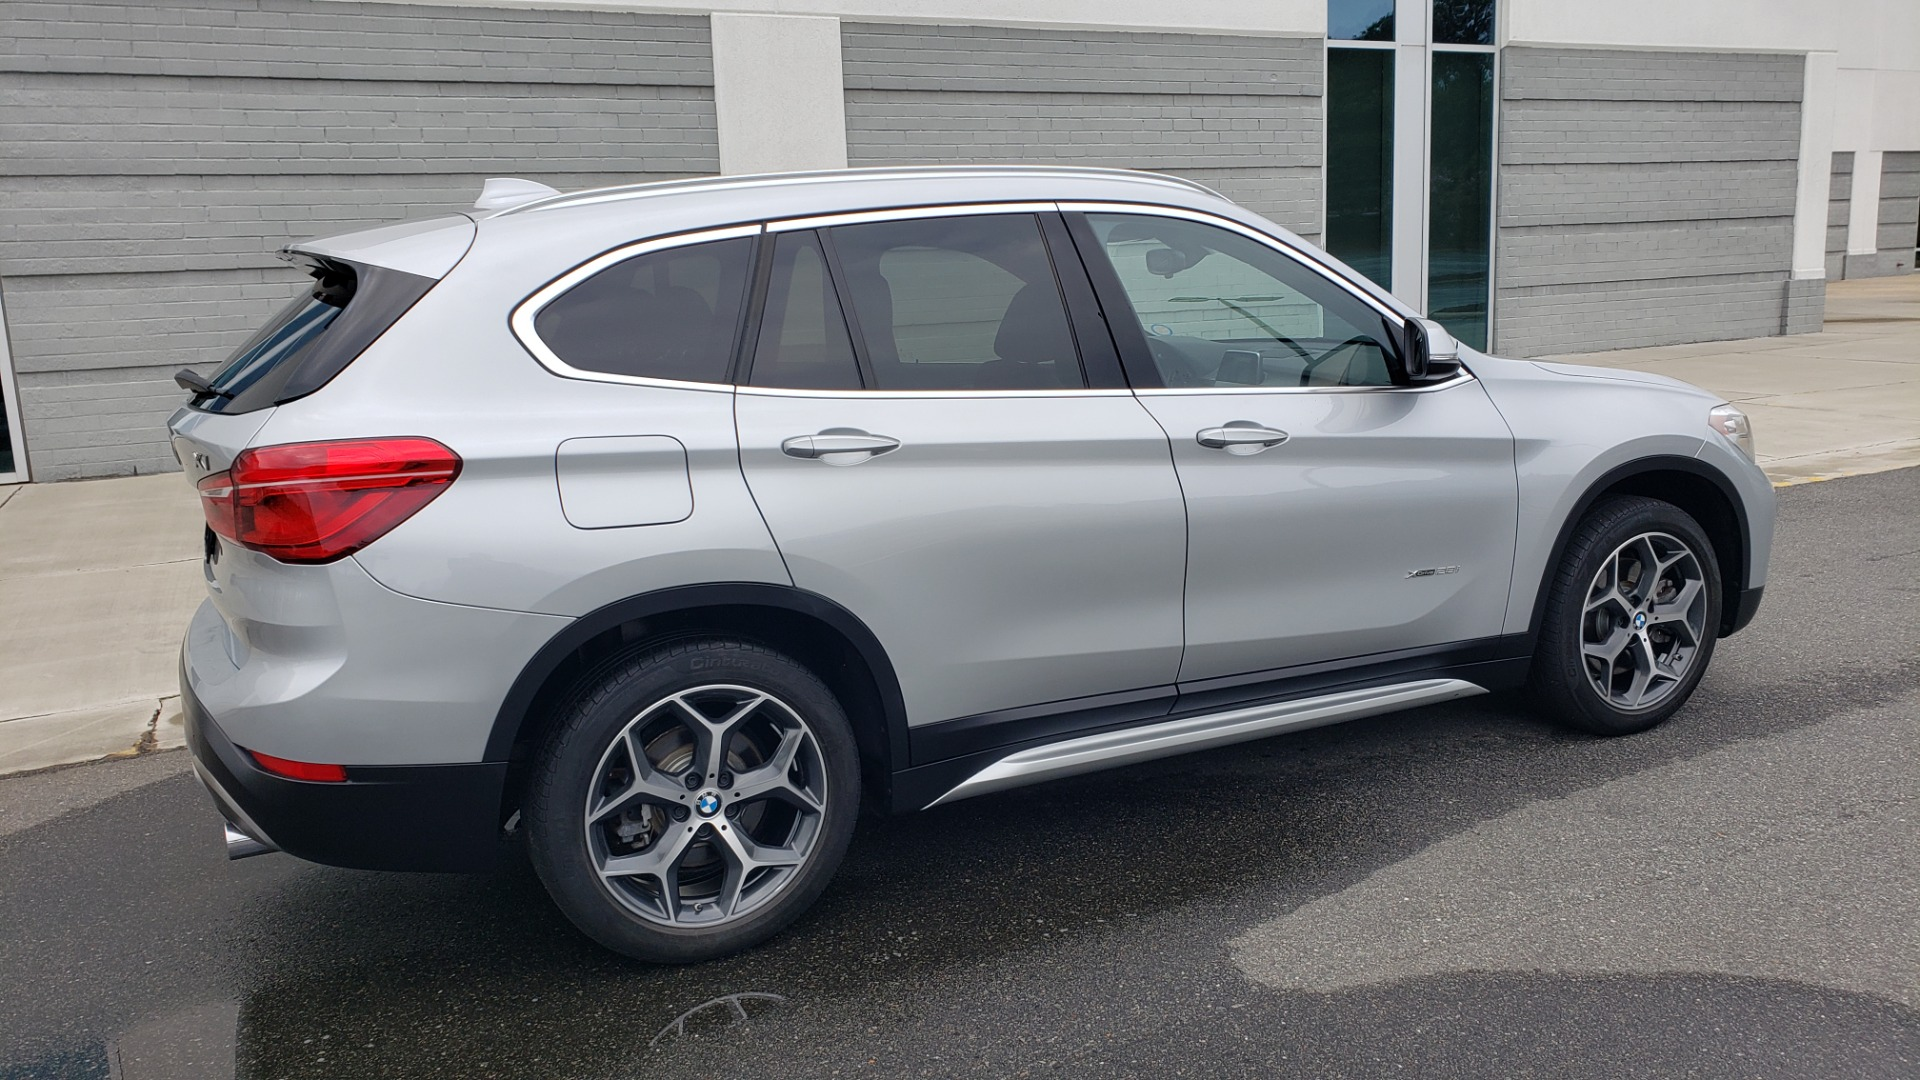 Used 2018 BMW X1 XDRIVE38I / NAV / CONV PKG / PANO-ROOF / HTD STS / REARVIEW for sale $28,995 at Formula Imports in Charlotte NC 28227 5